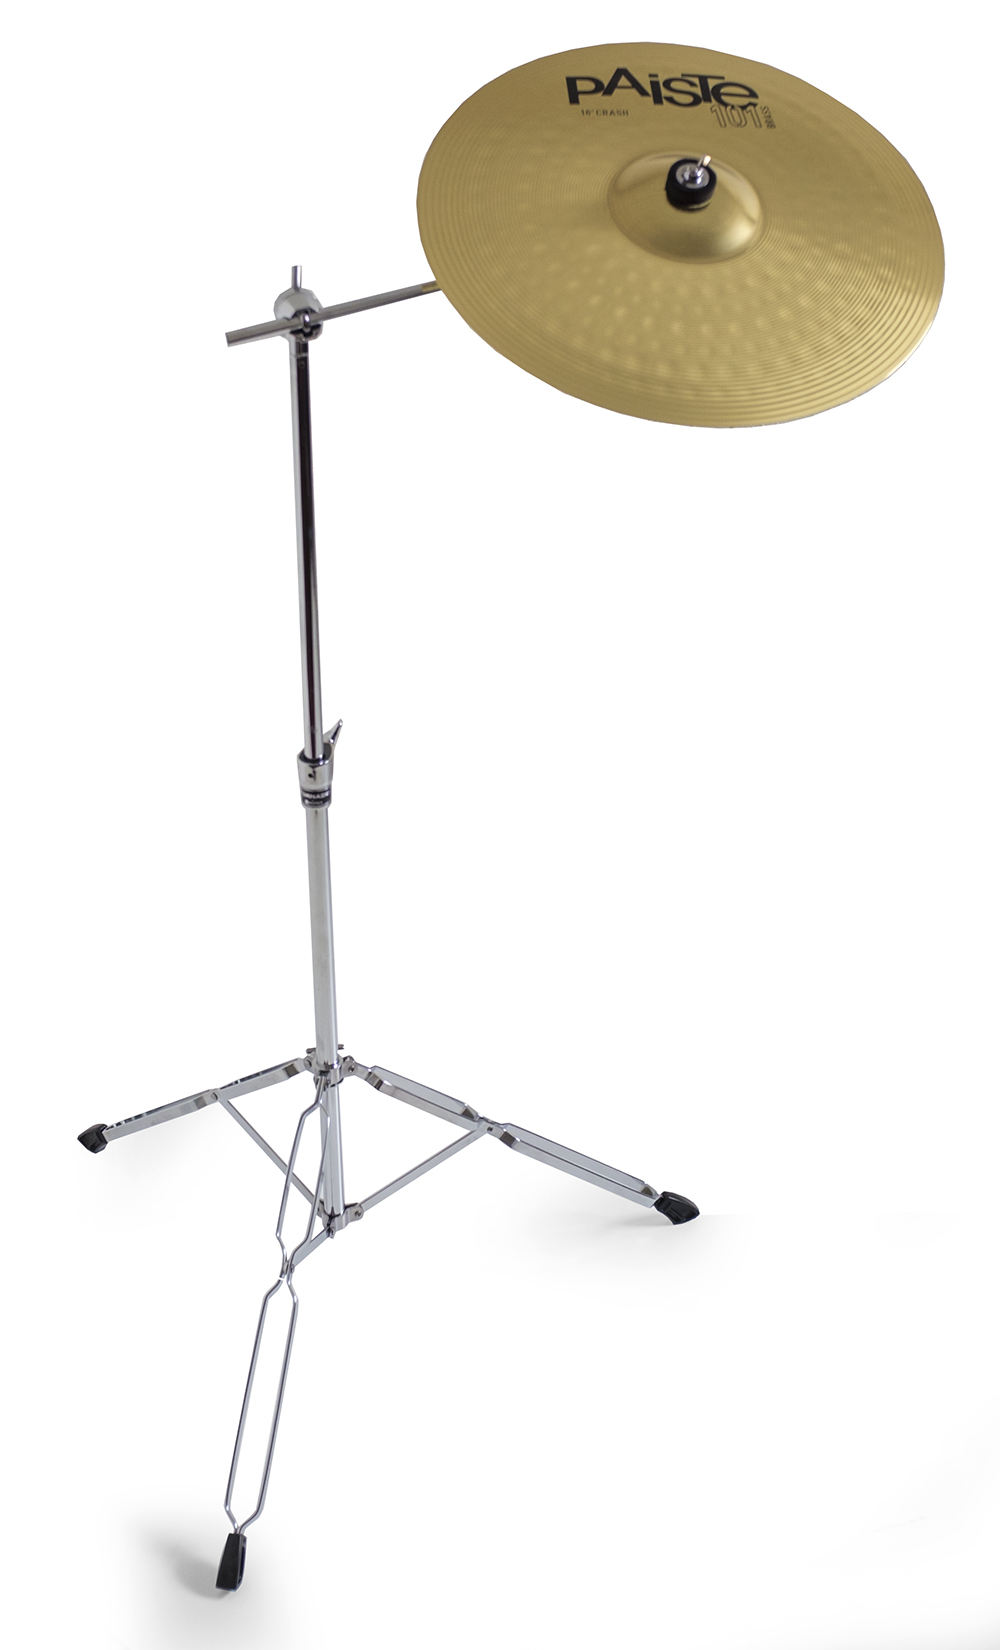 paiste 20 101 ride cymbal mapex tornado boom stand 747207126729 ebay. Black Bedroom Furniture Sets. Home Design Ideas